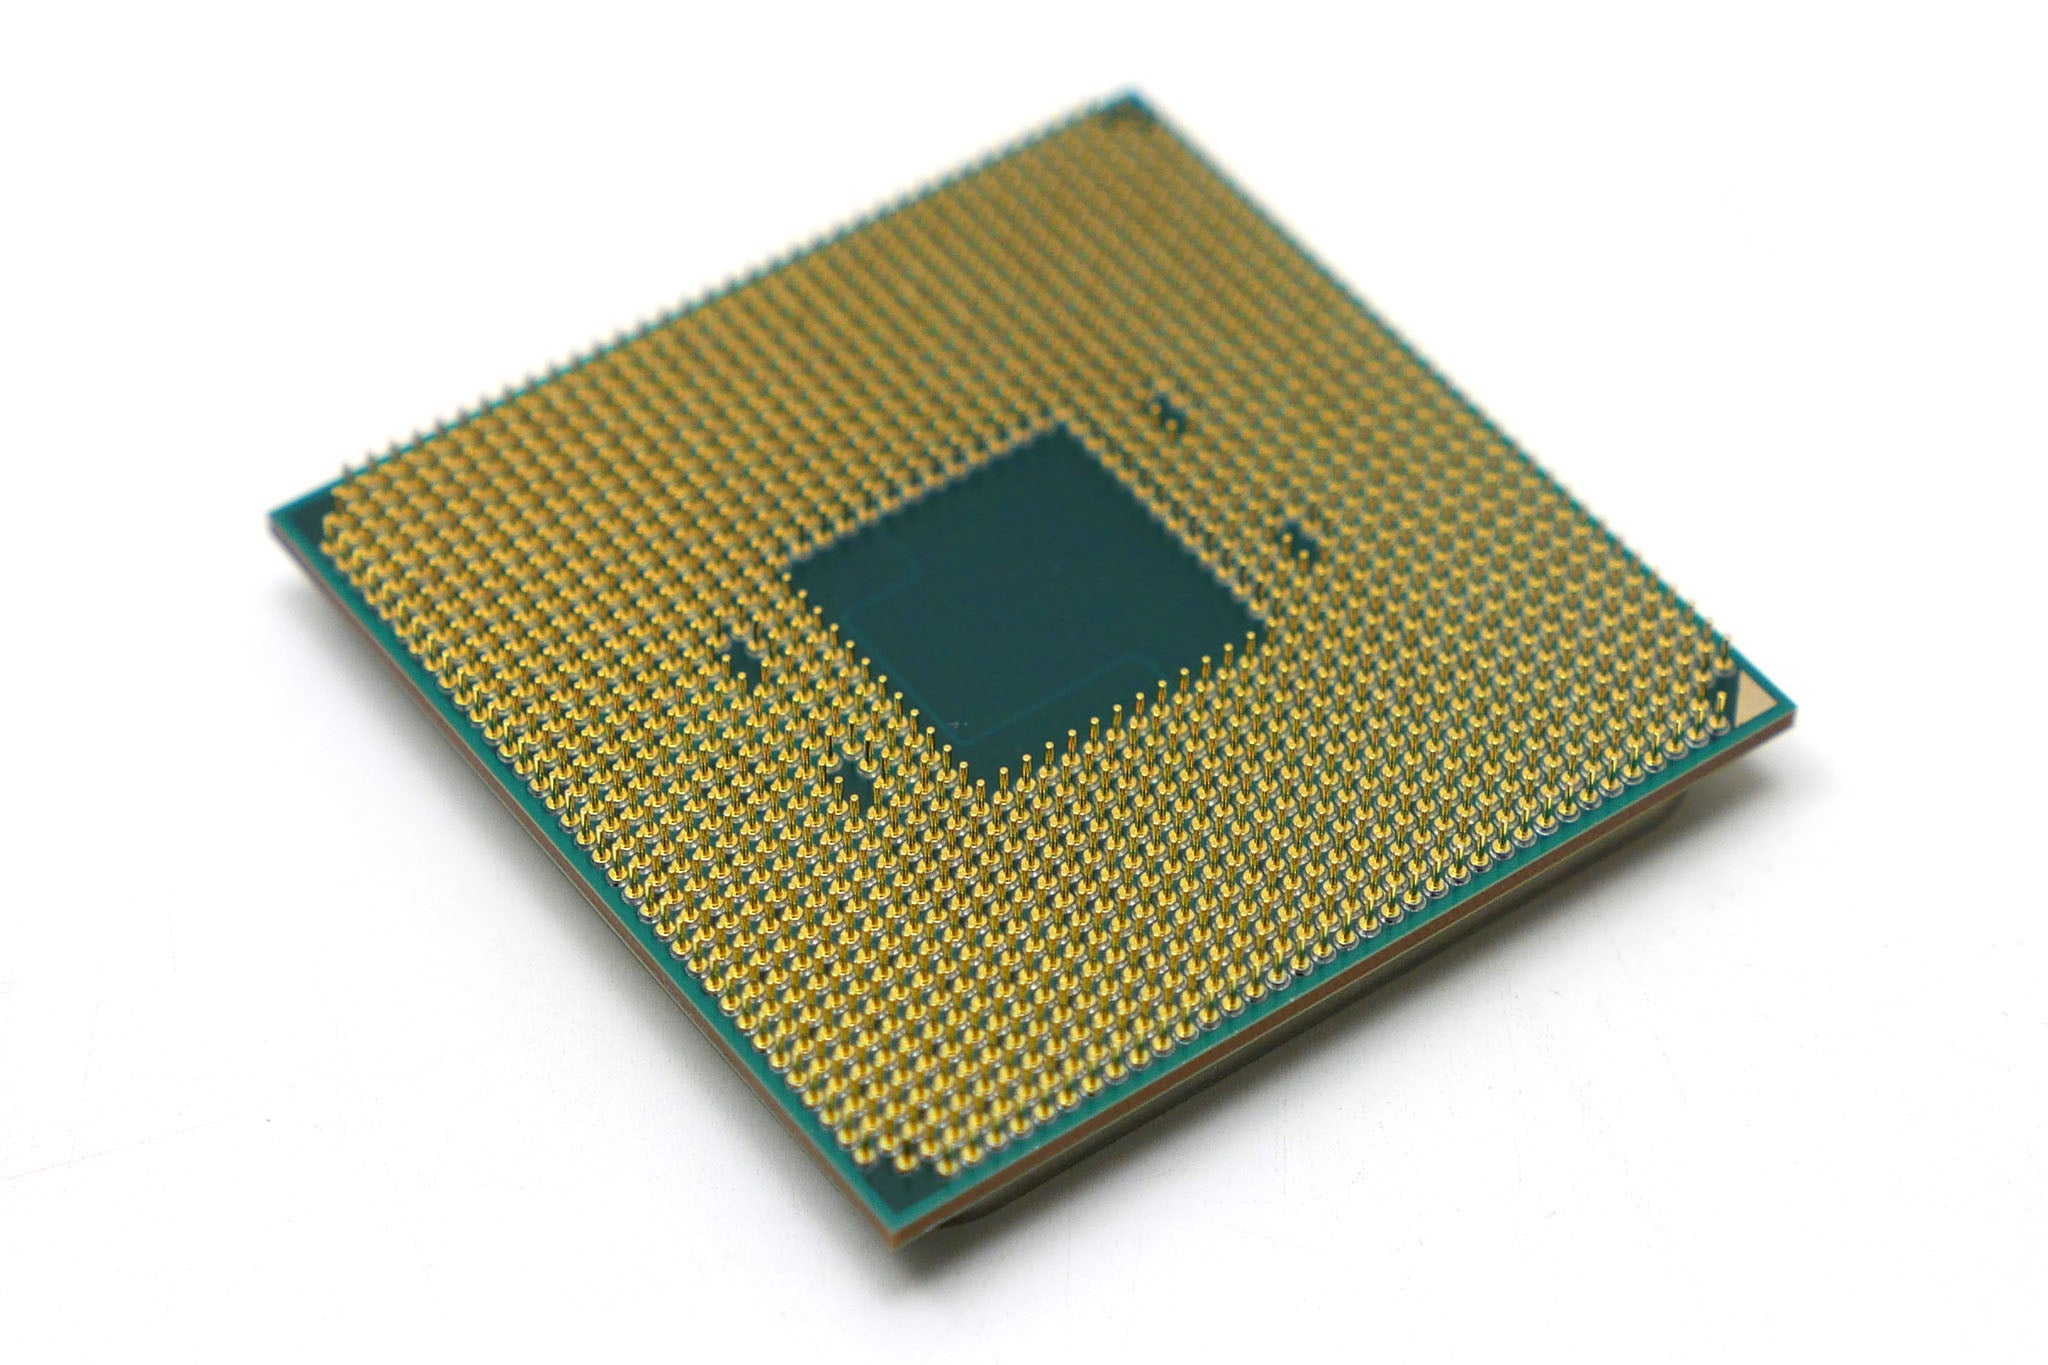 What is the CPU